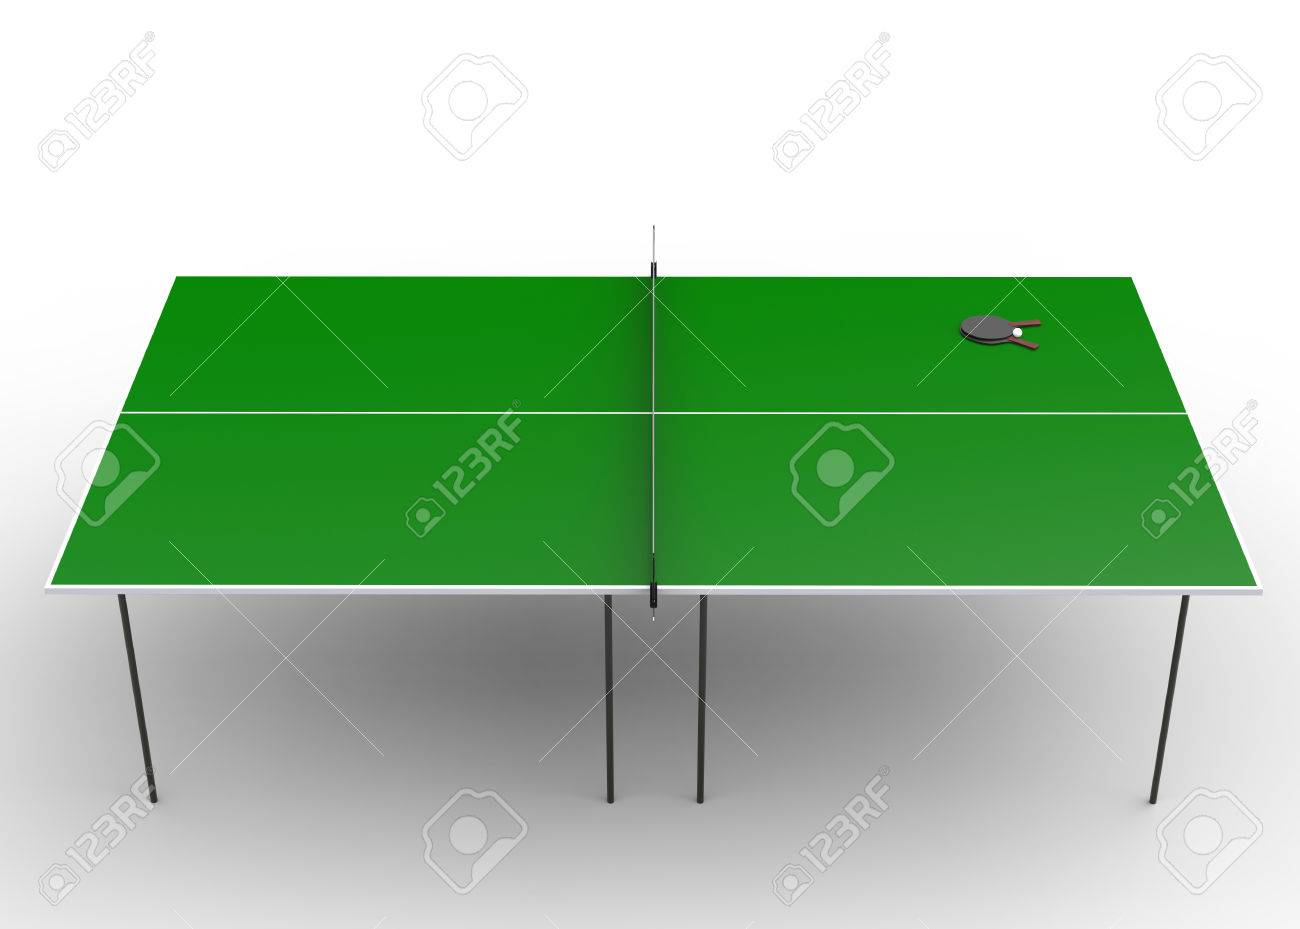 Exceptionnel Ping   Pong Table Top View   3D Render   On White Background Stock Photo